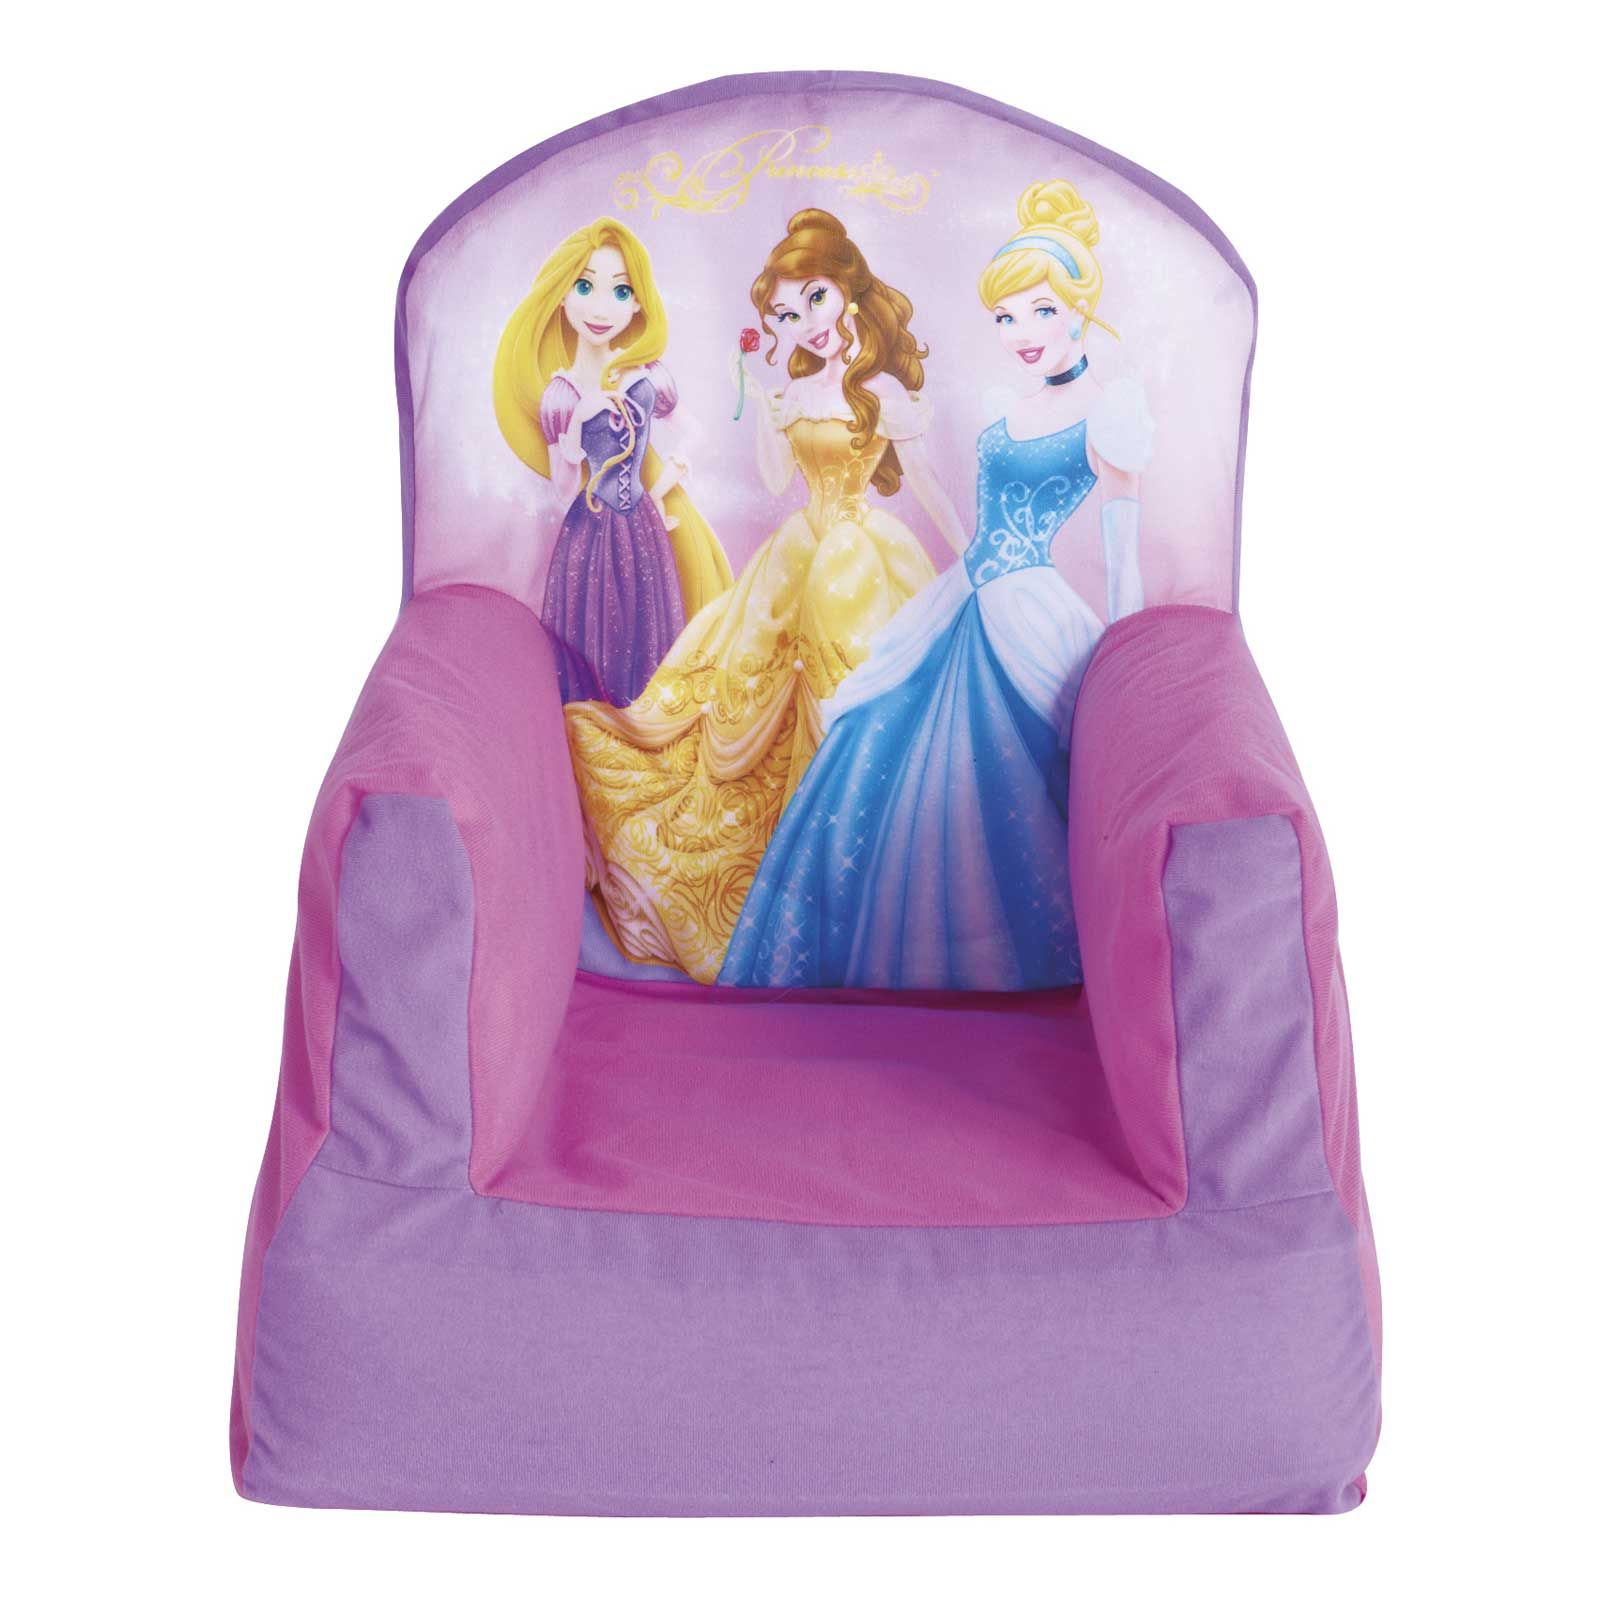 princess chairs for toddlers wayfair leather chair disney cosy kids bedroom furniture new girls